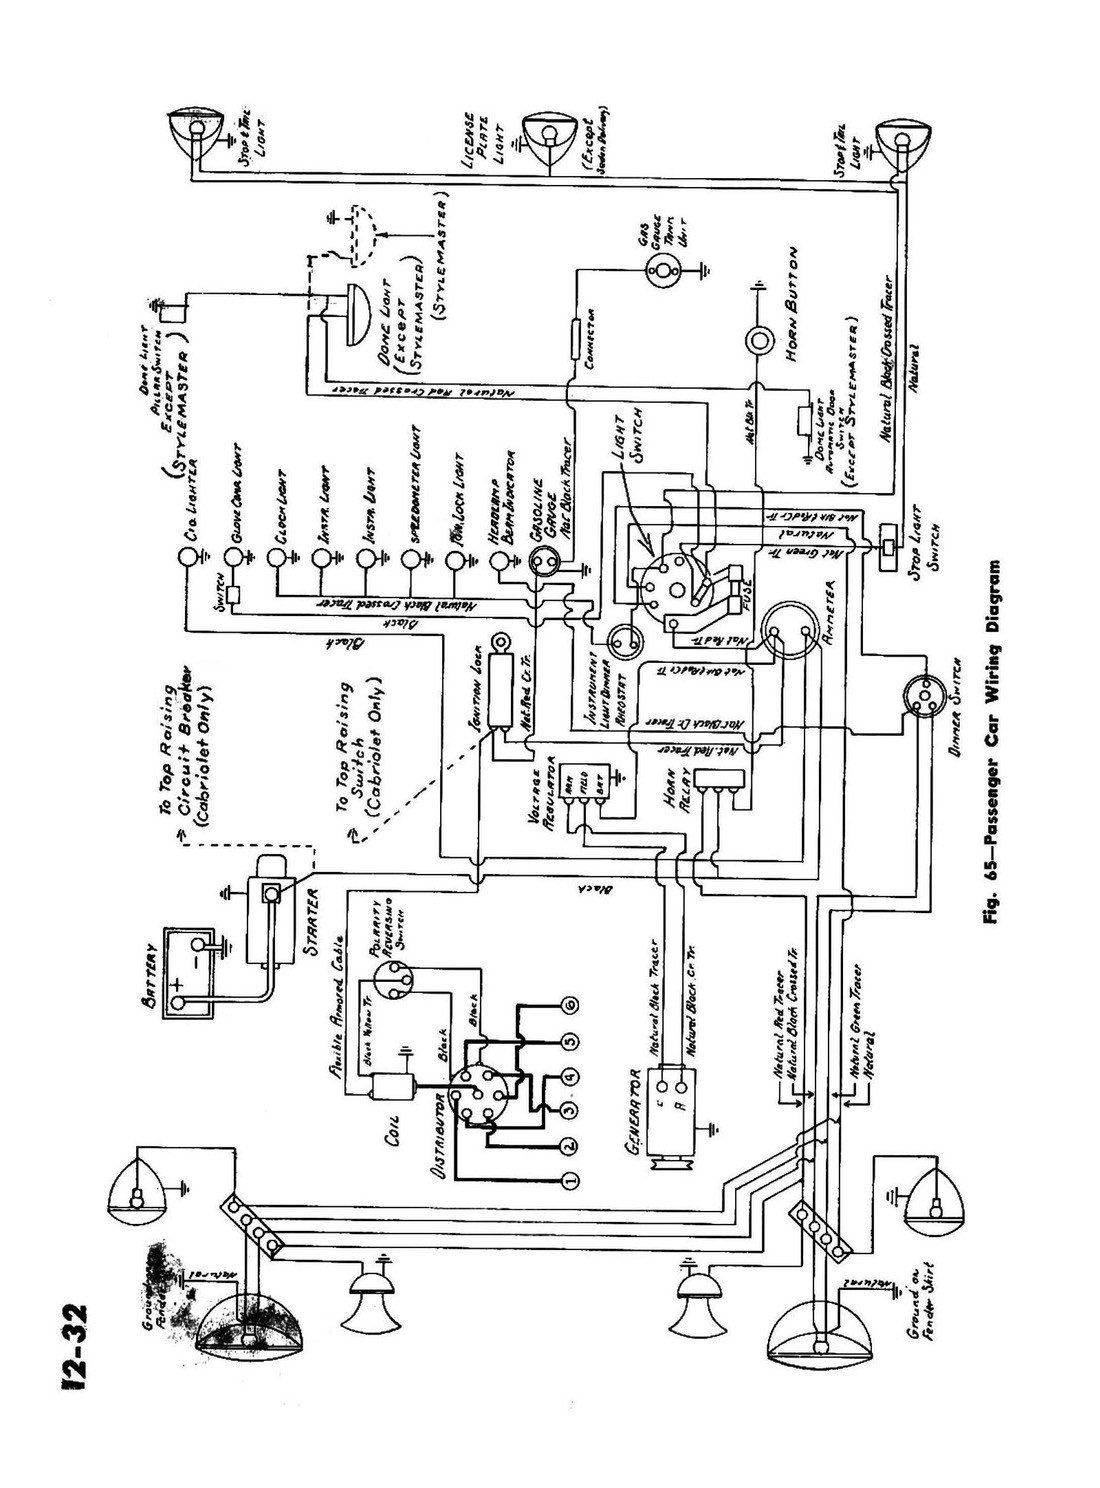 medium resolution of wiring diagram electric schematic circuit building fancy auto pertaining to auto electrical schematic